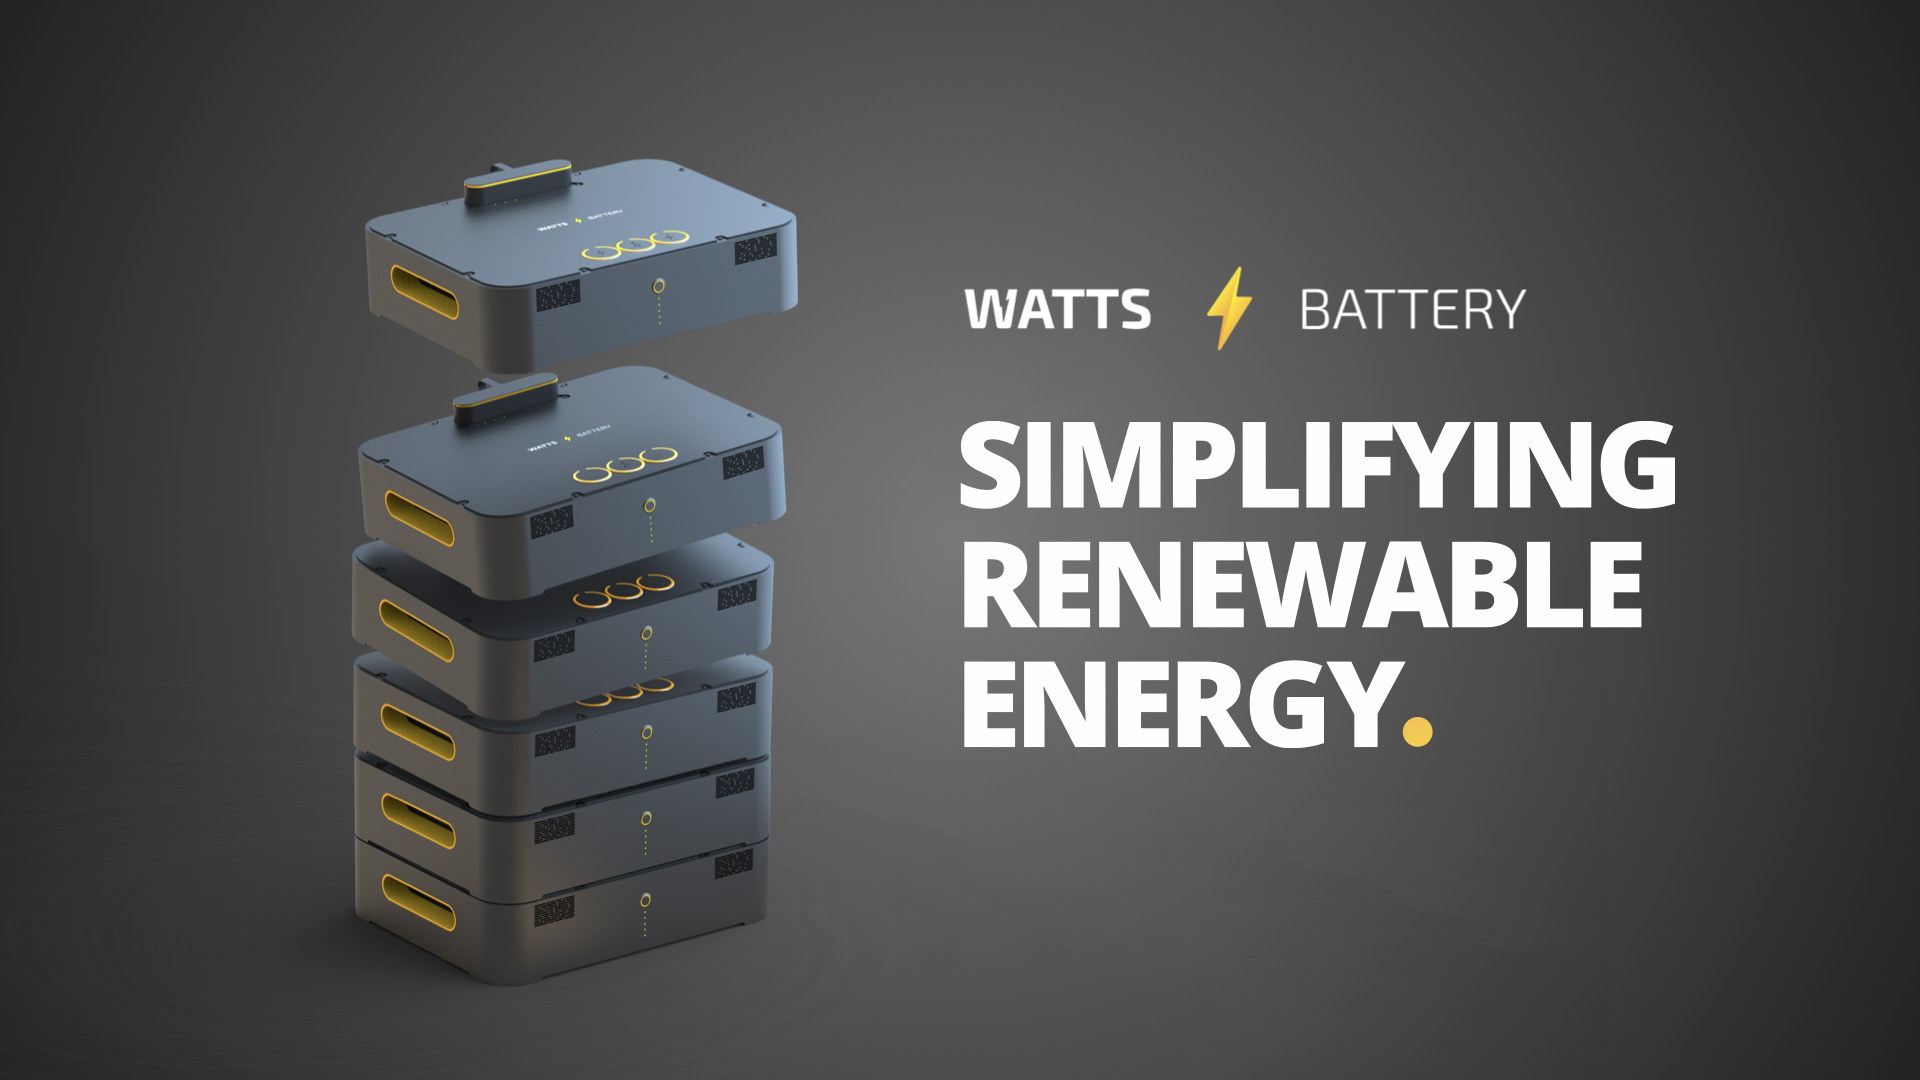 The Future: WATTS Battery Energy Management System